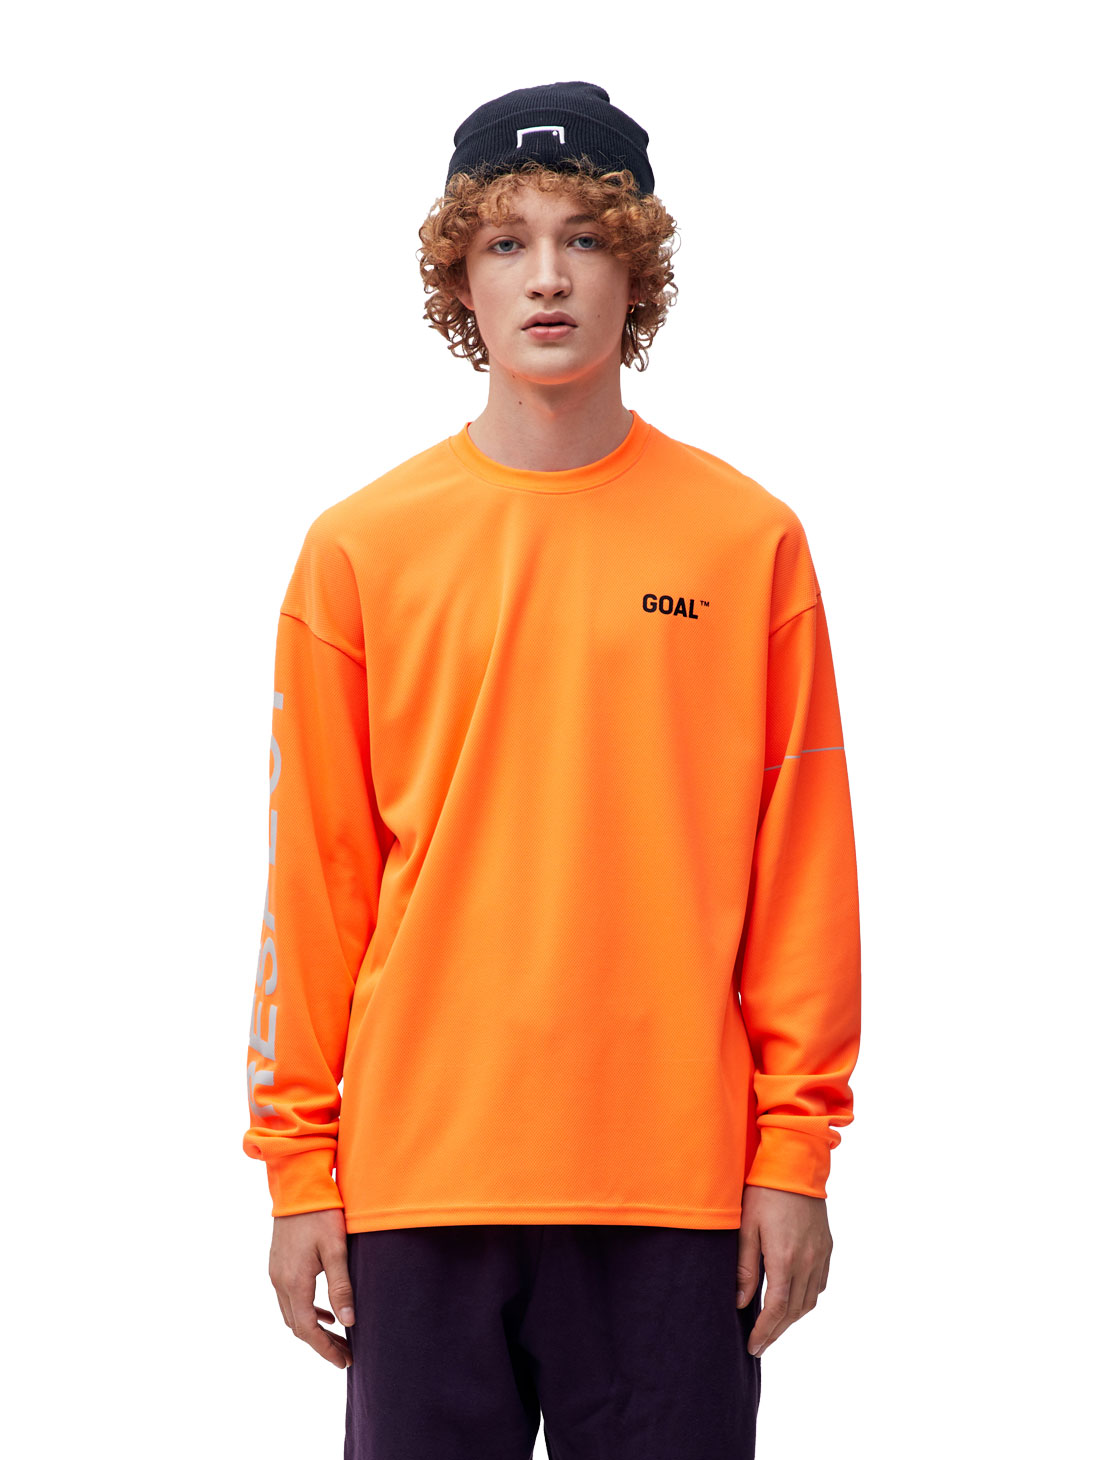 GOALSTUDIO RESPECT LONG SLEEVE TEE - ORANGE